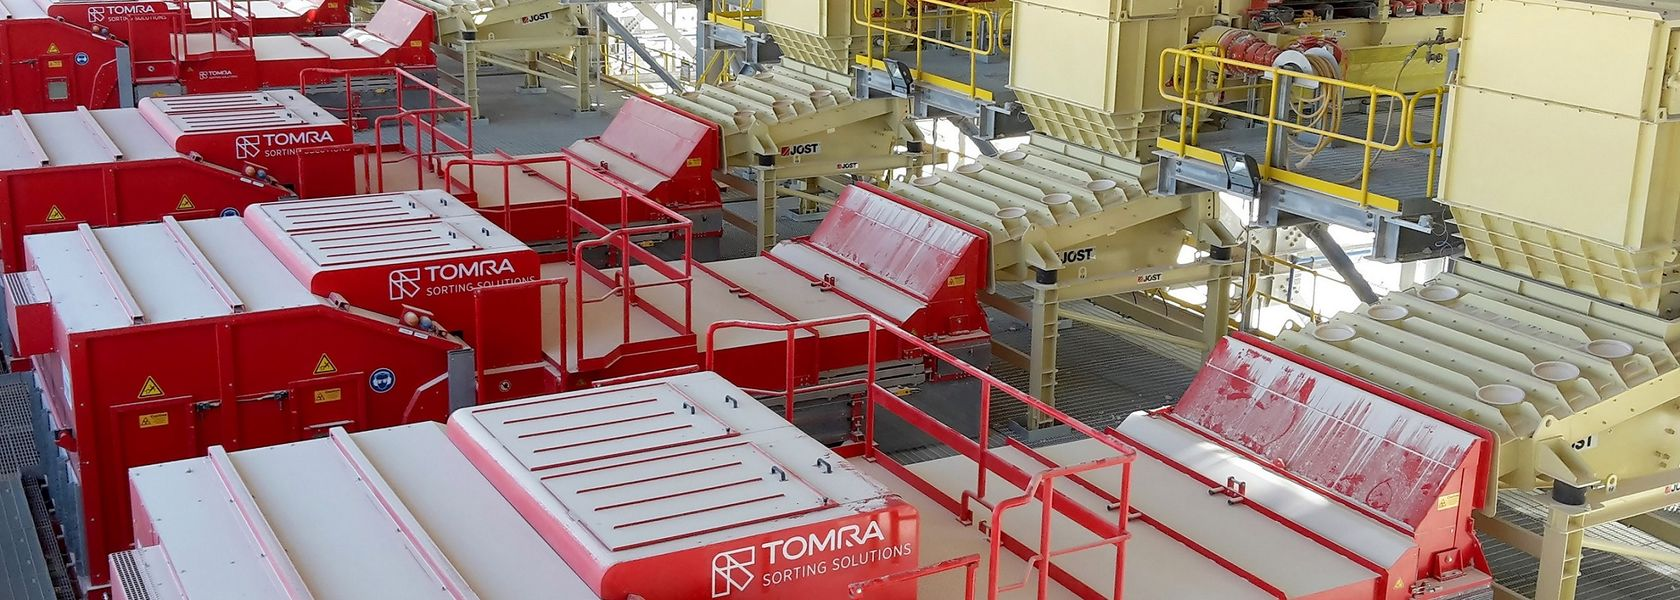 Large new Tomra X-ray sorter